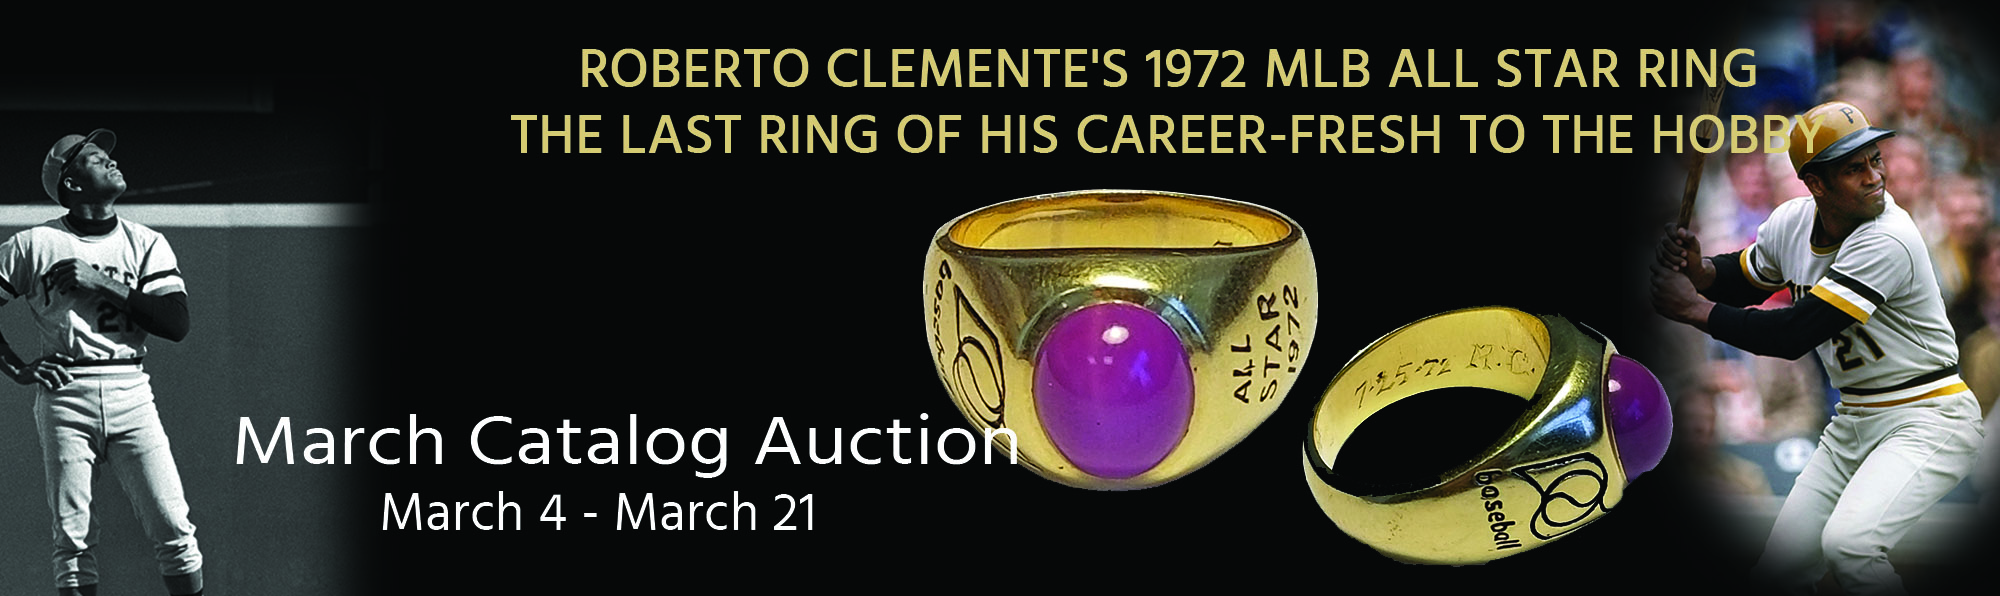 Roberto Clemente's 1972 MLB All Star Ring - The Last Ring of his Career